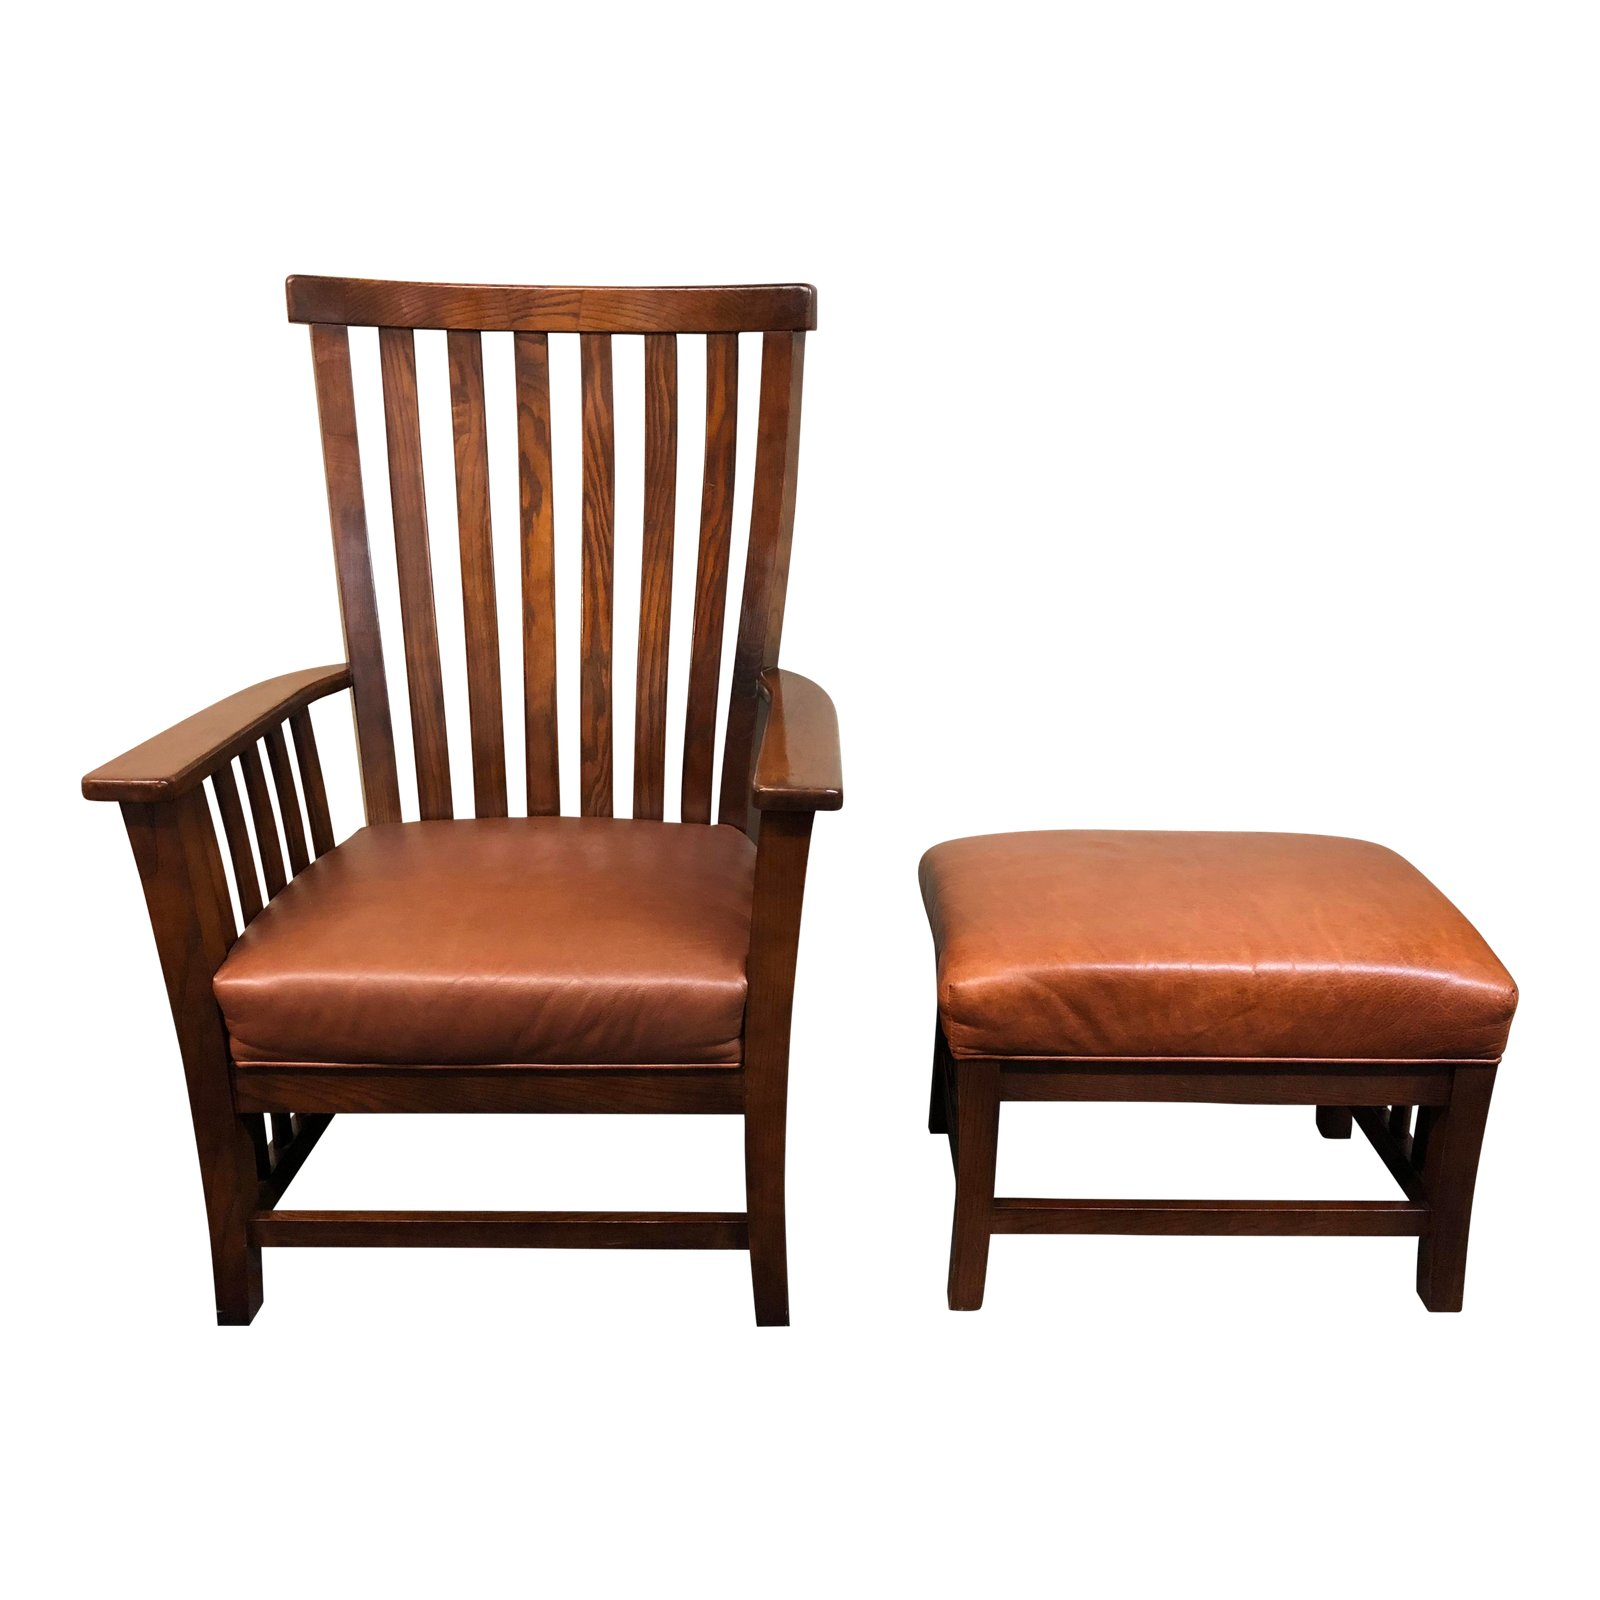 Brilliant Mccreary Modern Arts Crafts Style Chair And Ottoman 2 Onthecornerstone Fun Painted Chair Ideas Images Onthecornerstoneorg